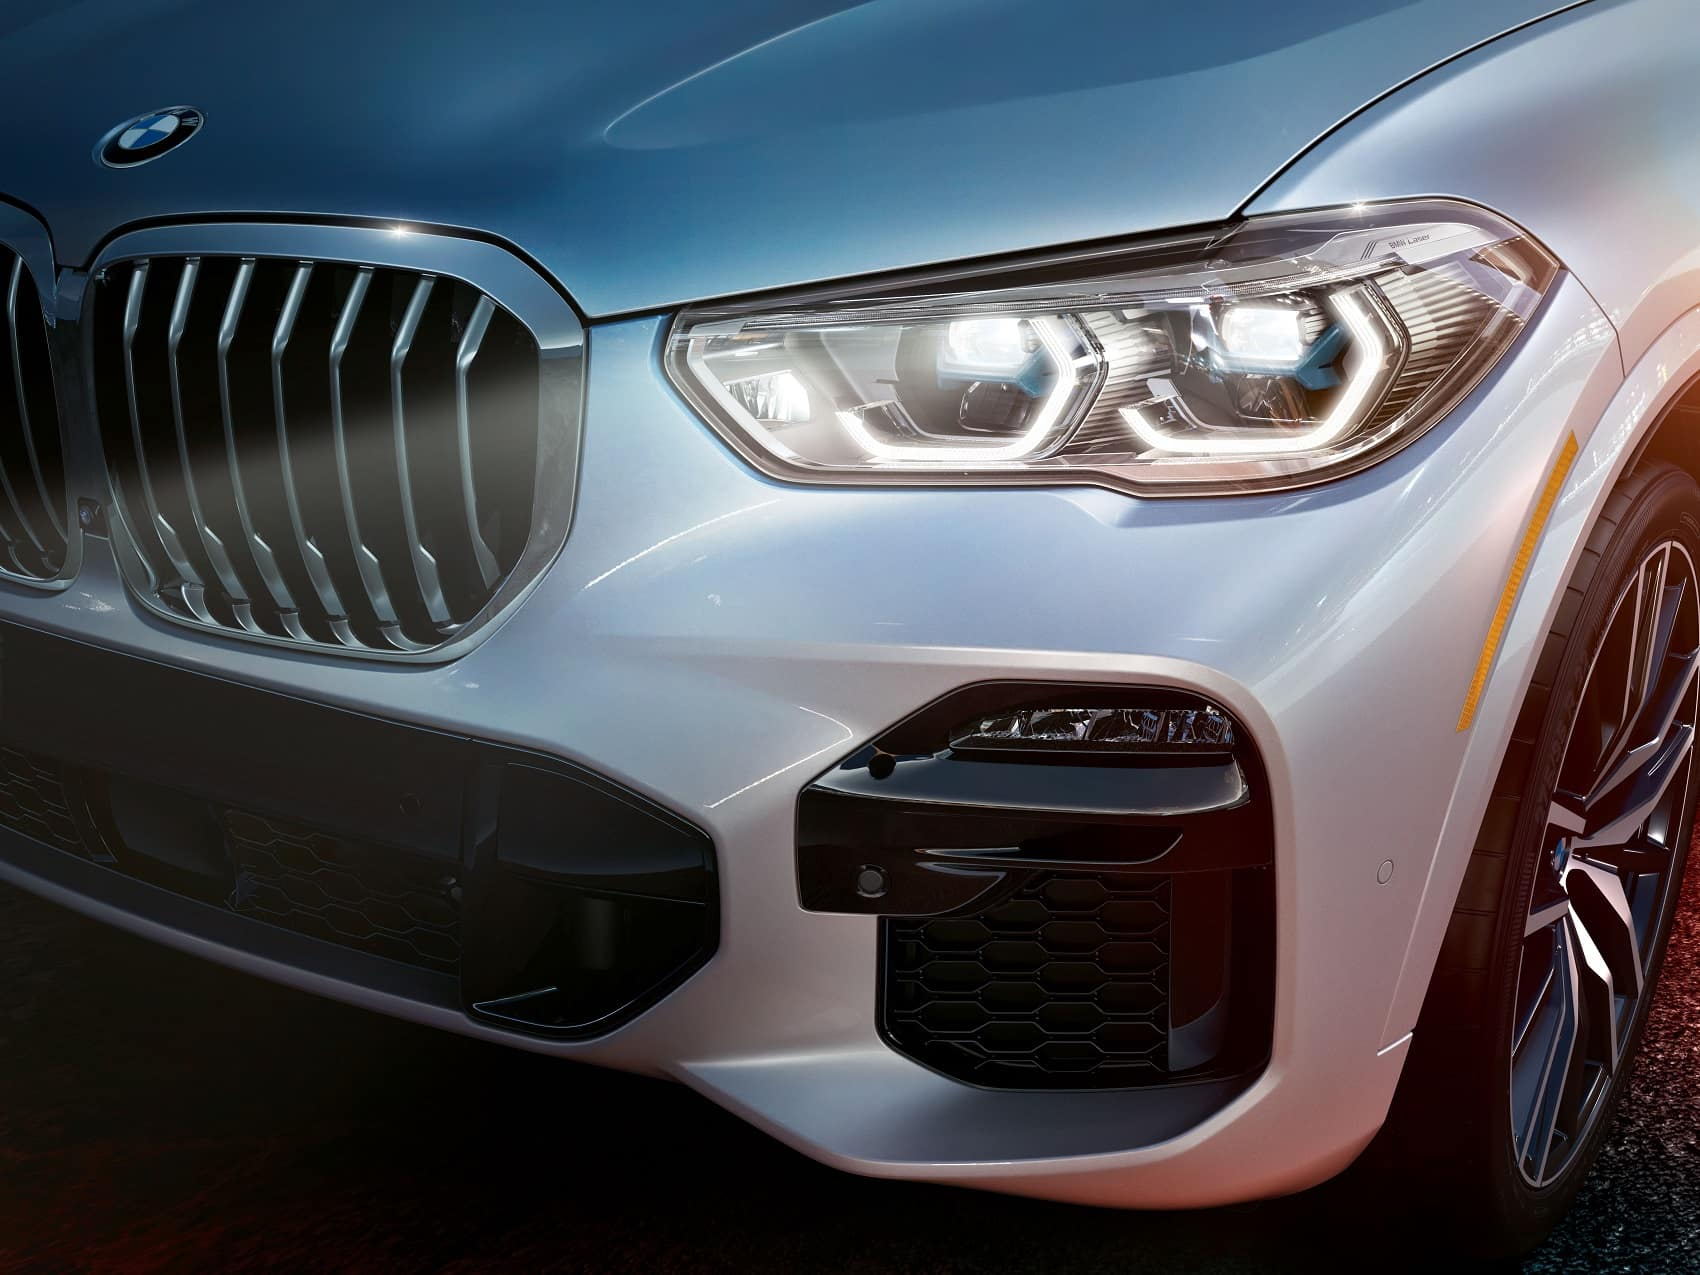 Bmw Dealership Near Me >> Bmw Dealer Near Me Galleria Bmw